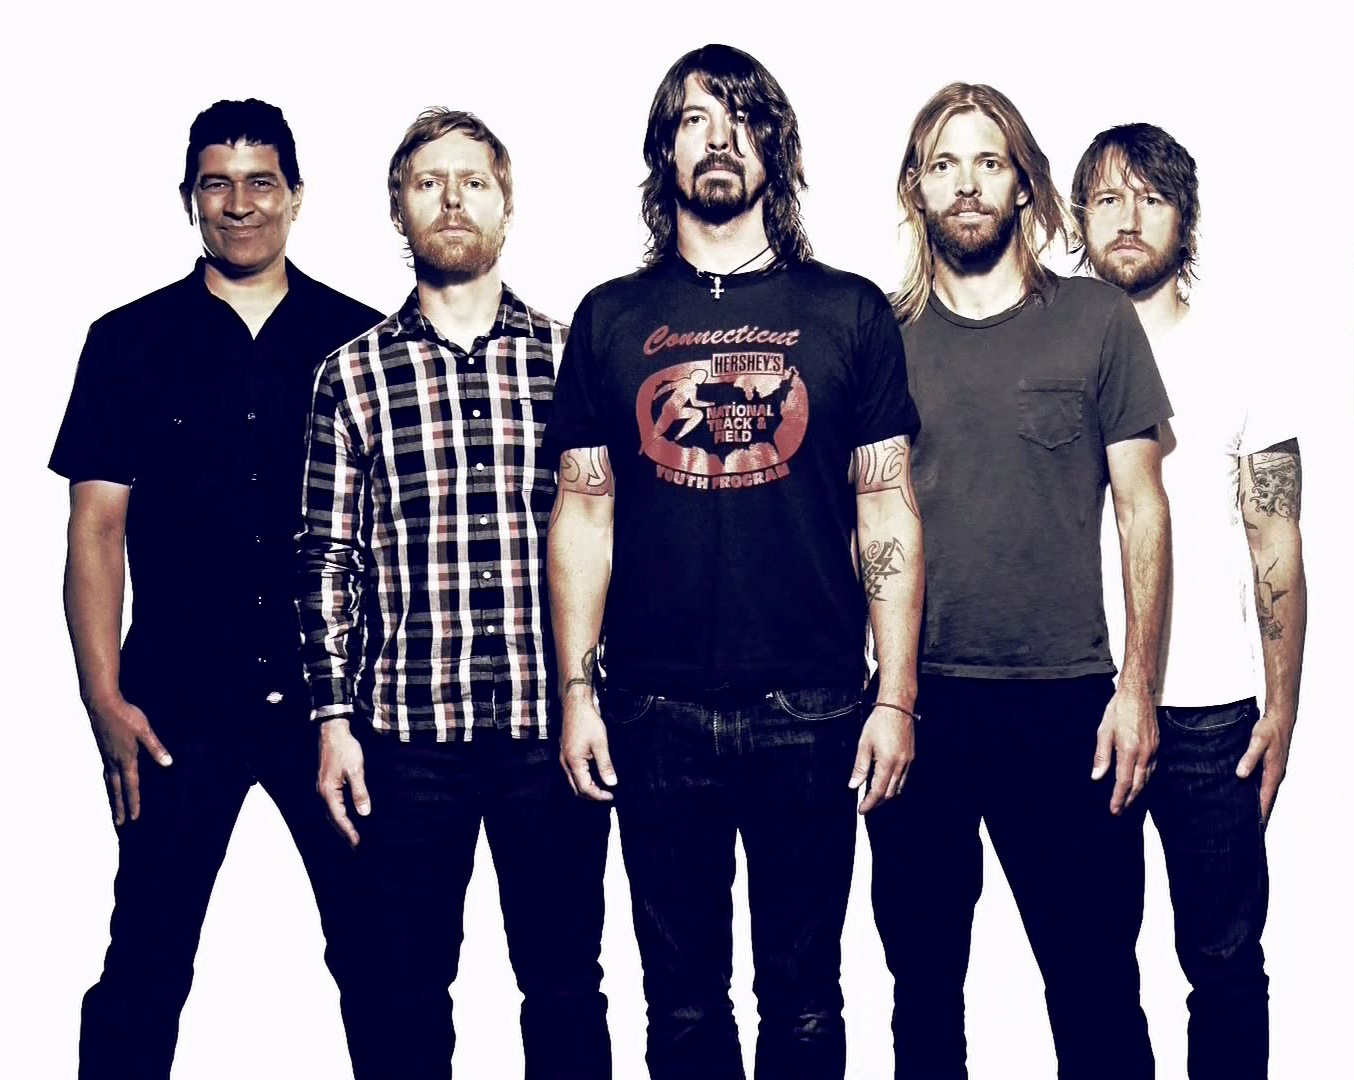 foo-fighters-tour-2014-concerti-confermati